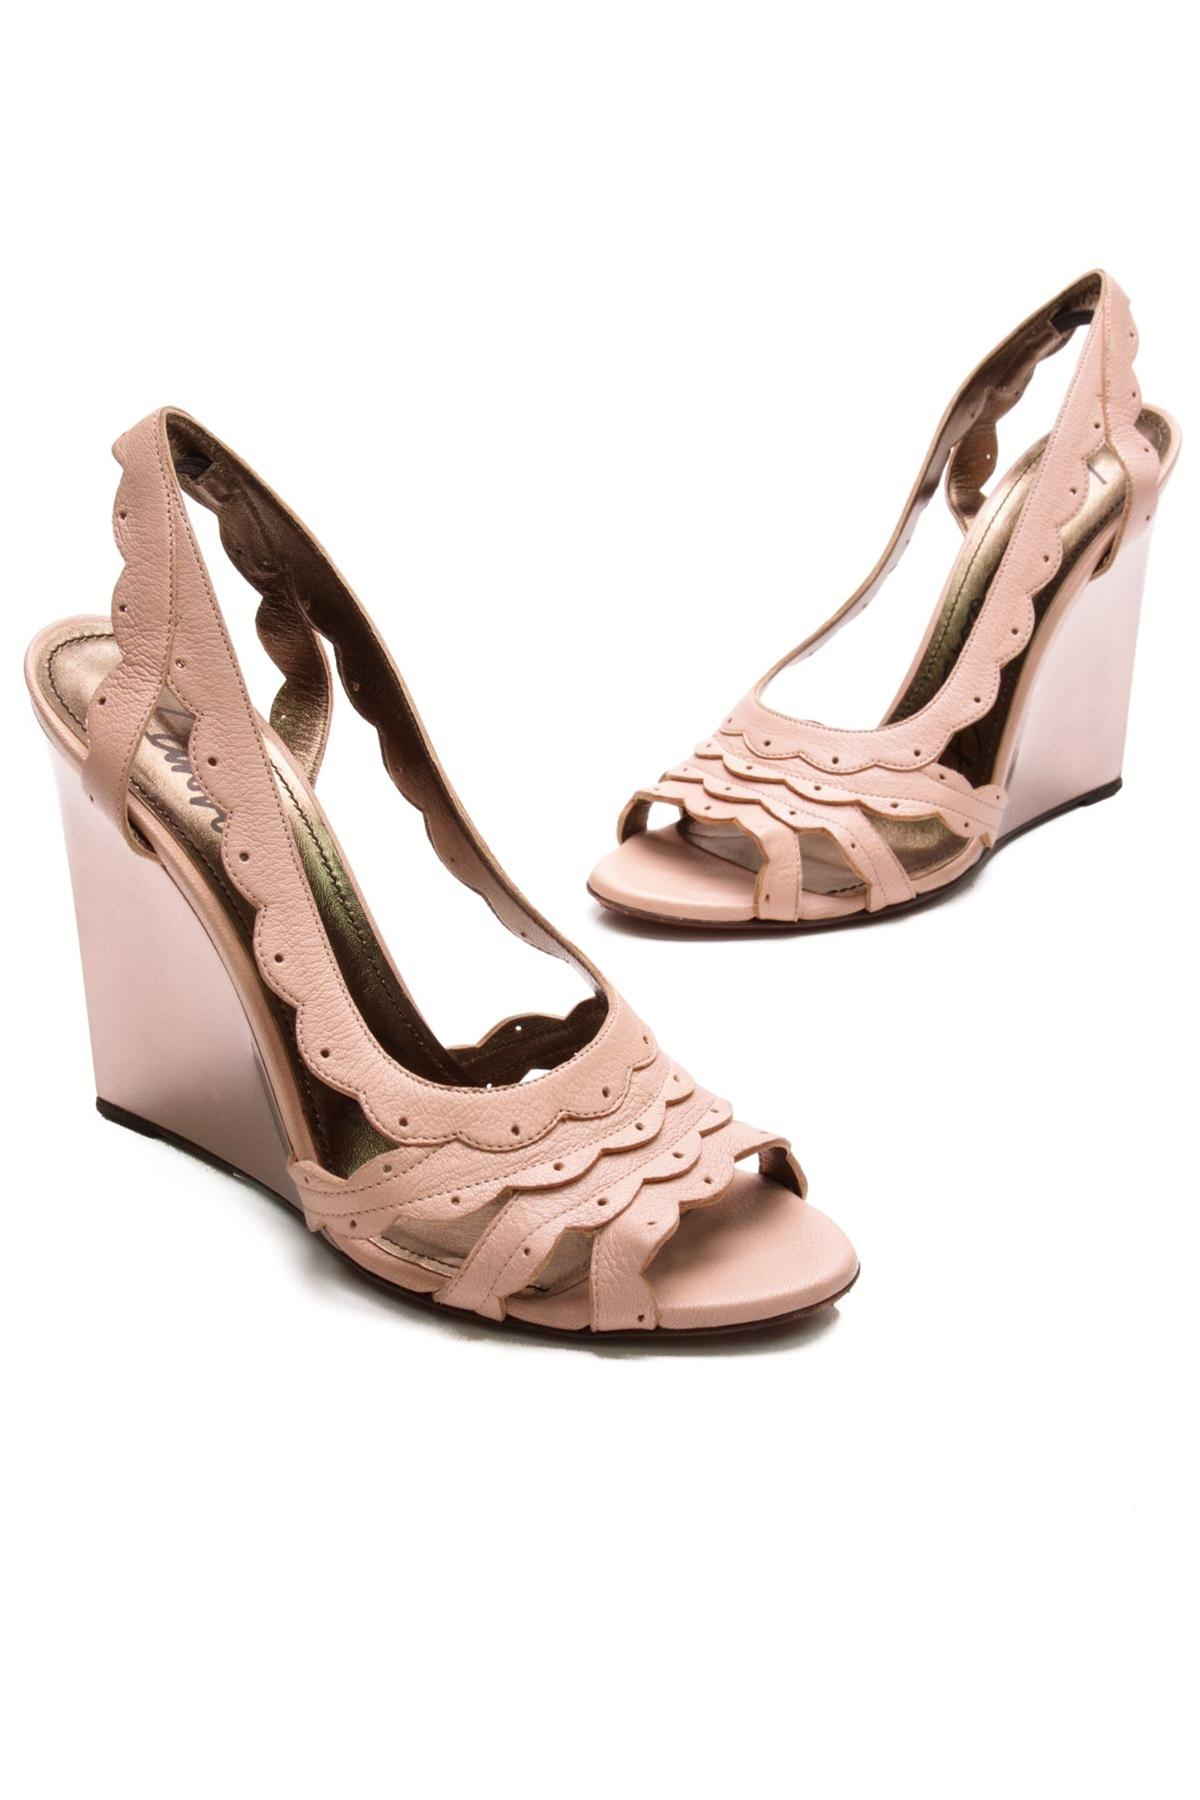 Lanvin Scalloped Slingback Sandals buy cheap best store to get clearance get to buy clearance factory outlet GLjnt